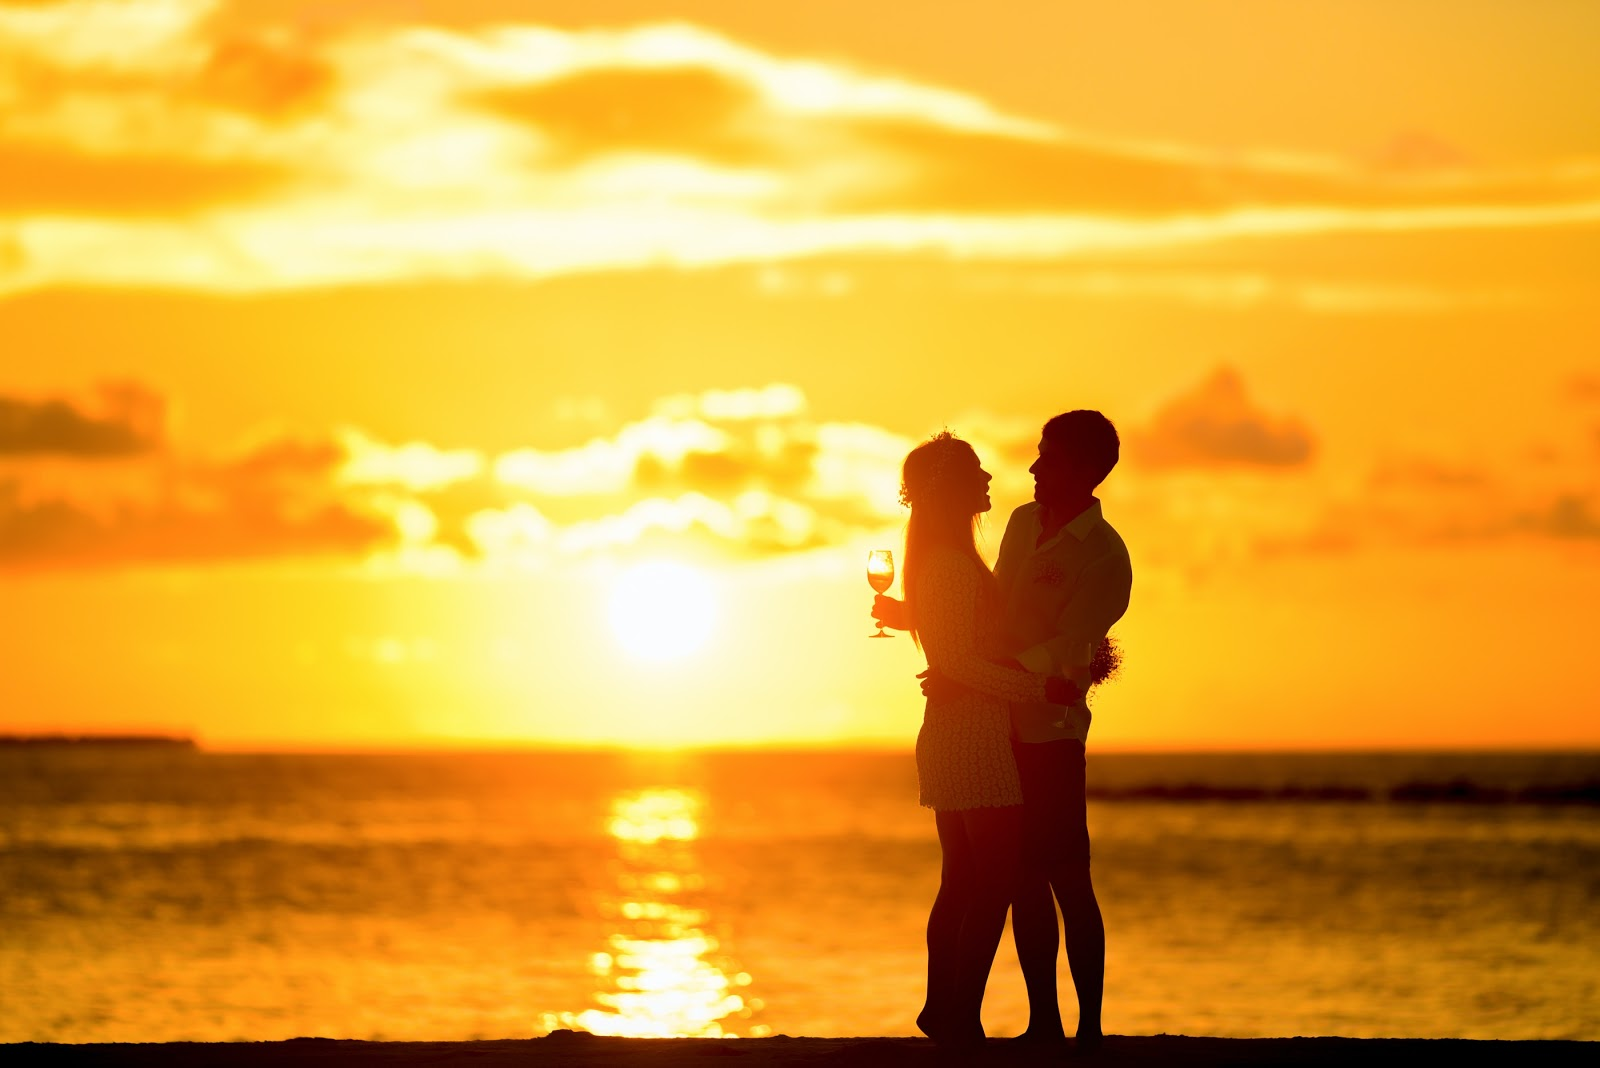 A couple hugs in front of a sunset on a beach.